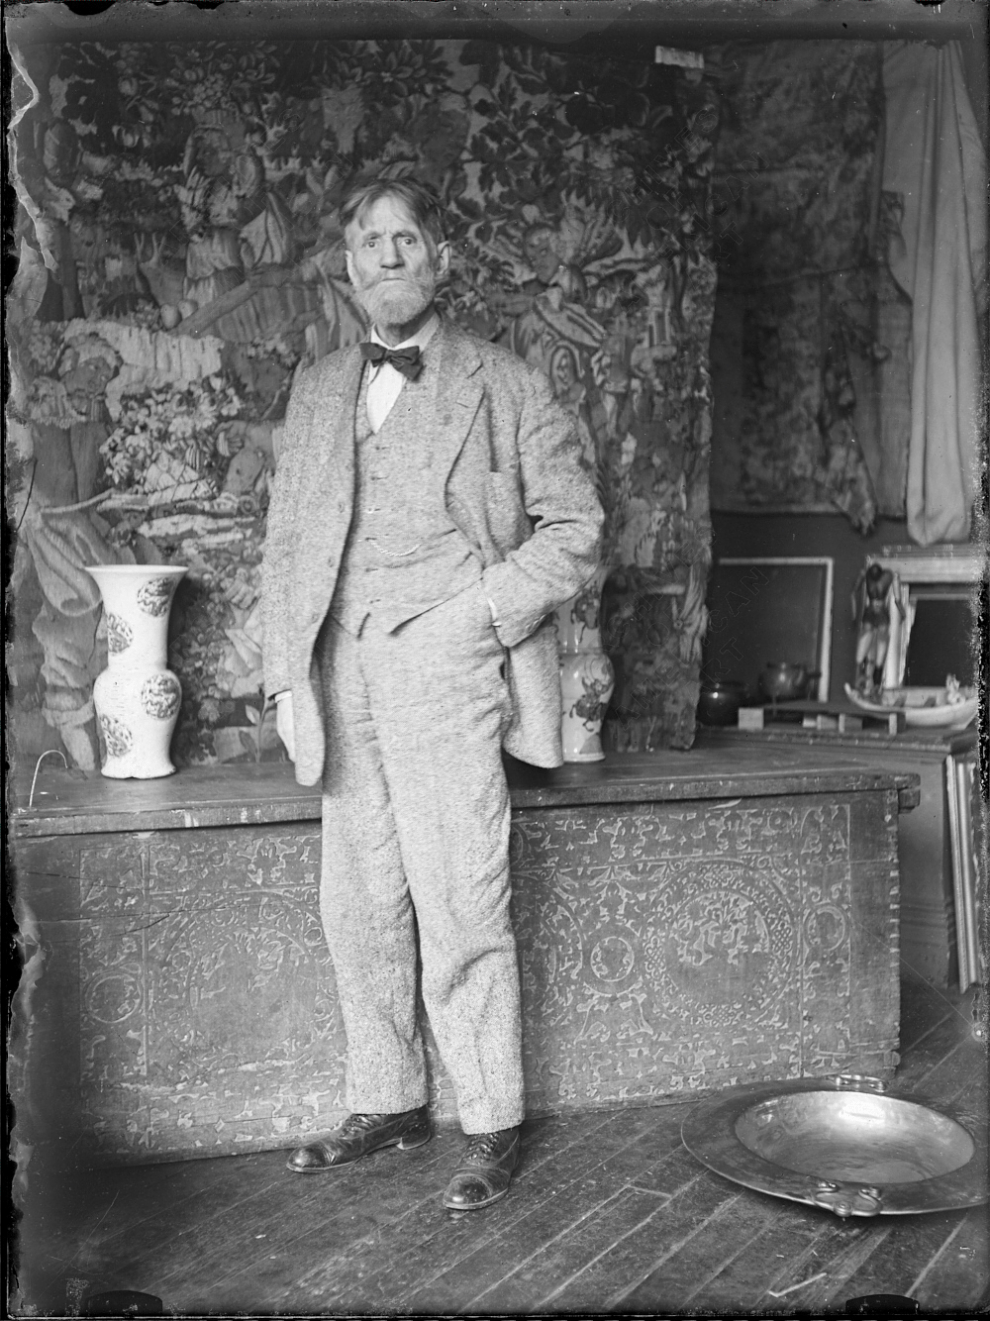 Fig. 1. Emil Carlsen, in studio with objects and furnishings used in his still-life paintings, c.1925